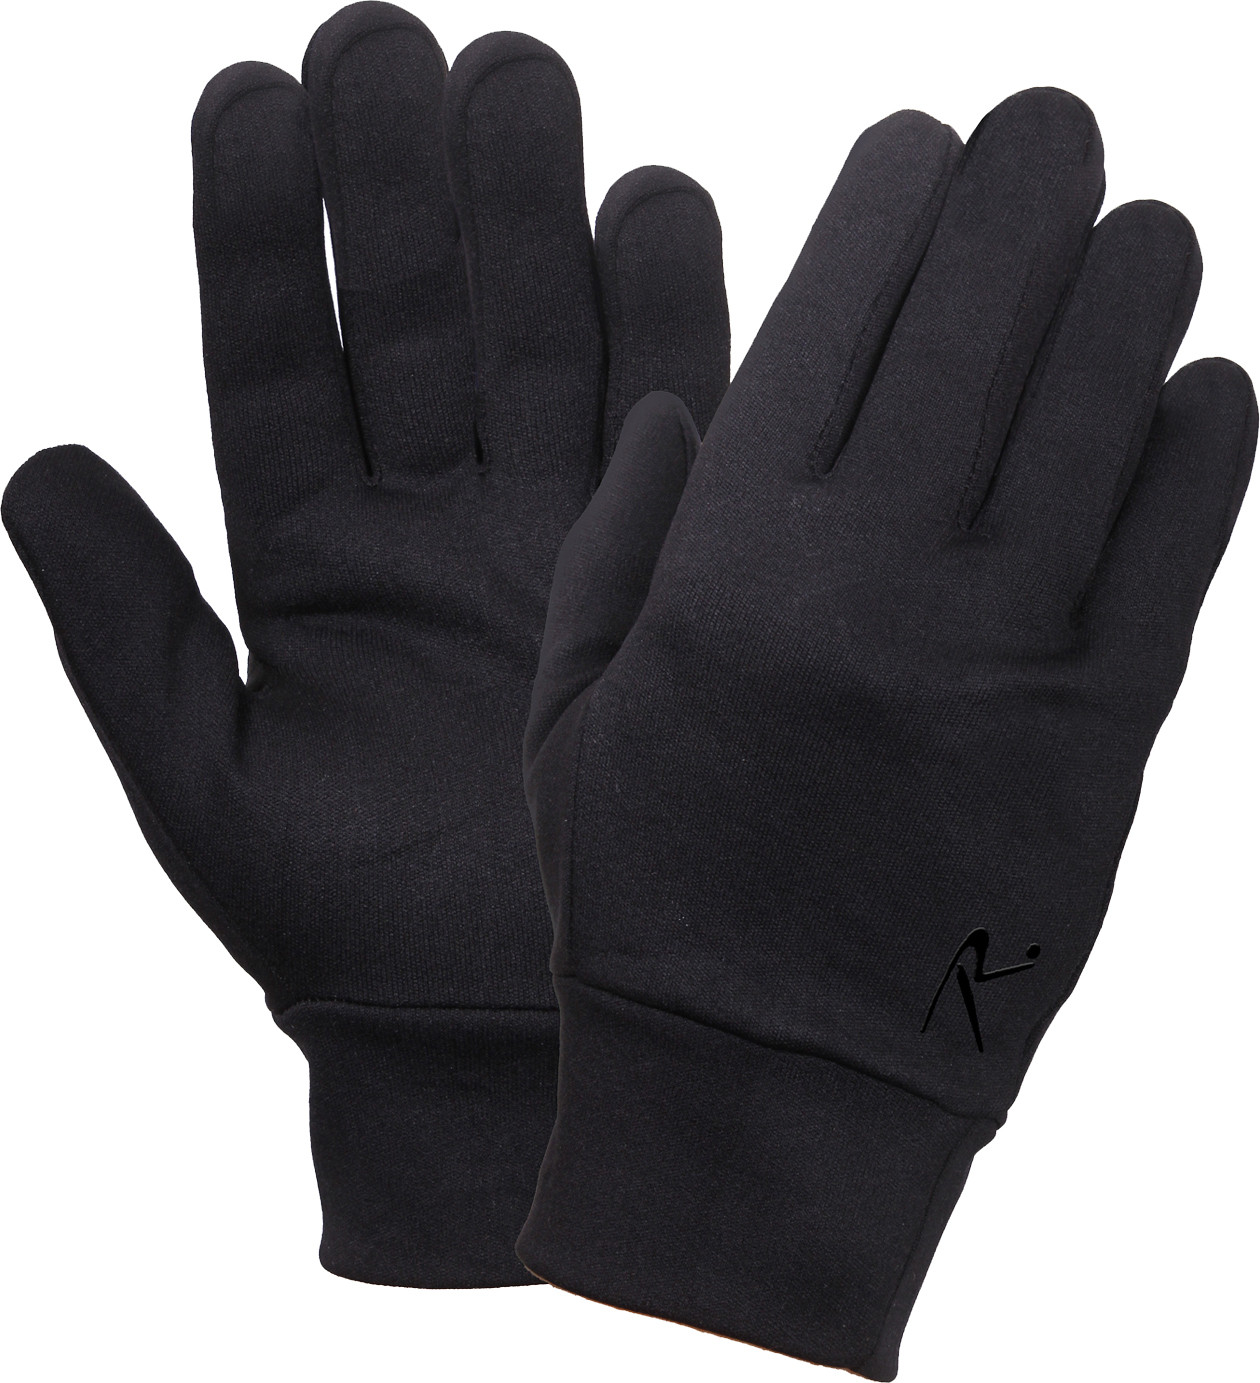 Black Military Lightweight Cold Weather Tactical Glove Liners f7851bdf0db8